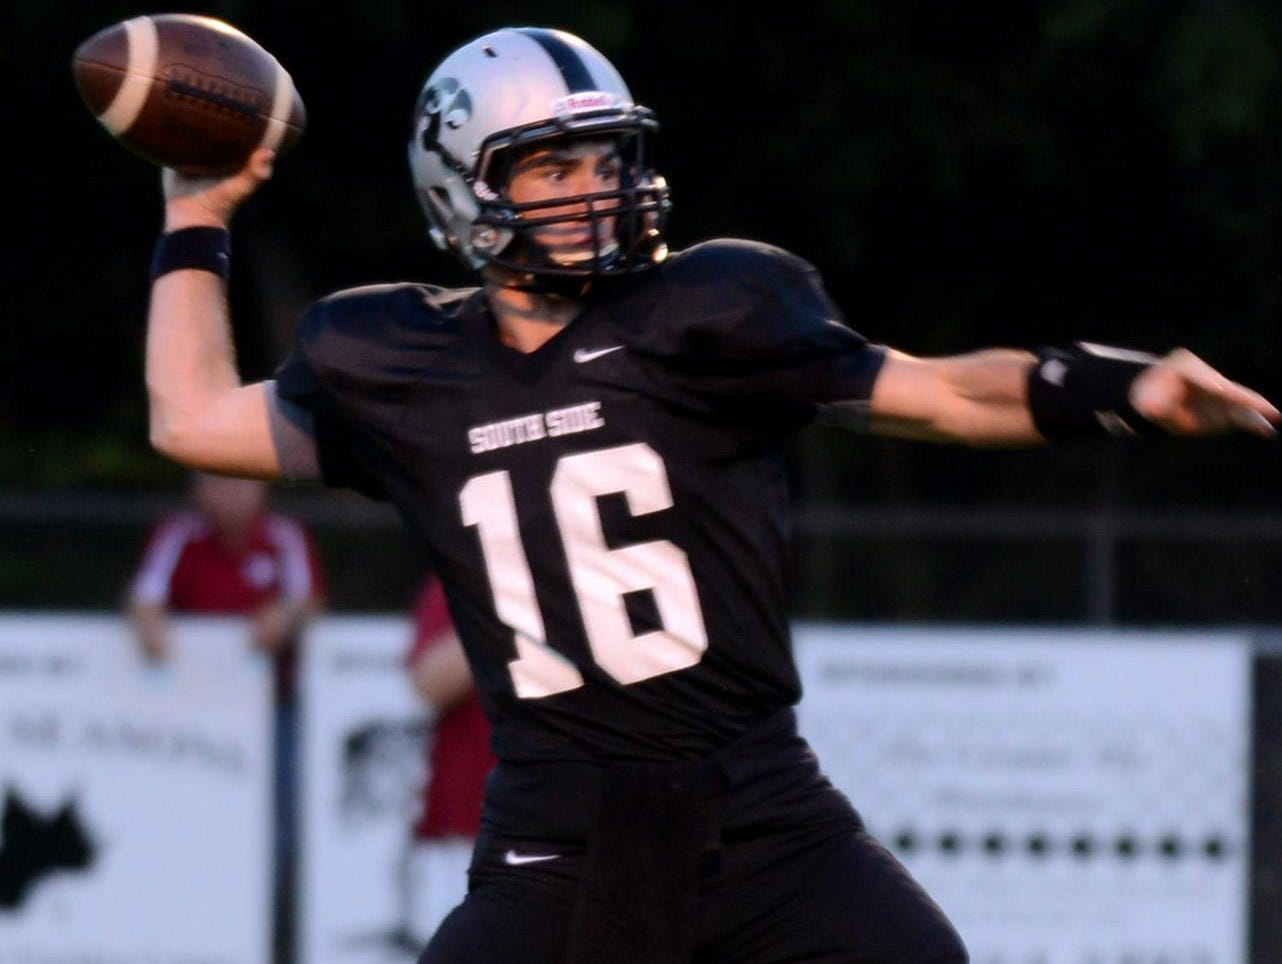 South Side's quarterback Cade Willingham throws a pass during a game last year. Willingham and the Hawks will not play rival North Side in a game that counts this year.